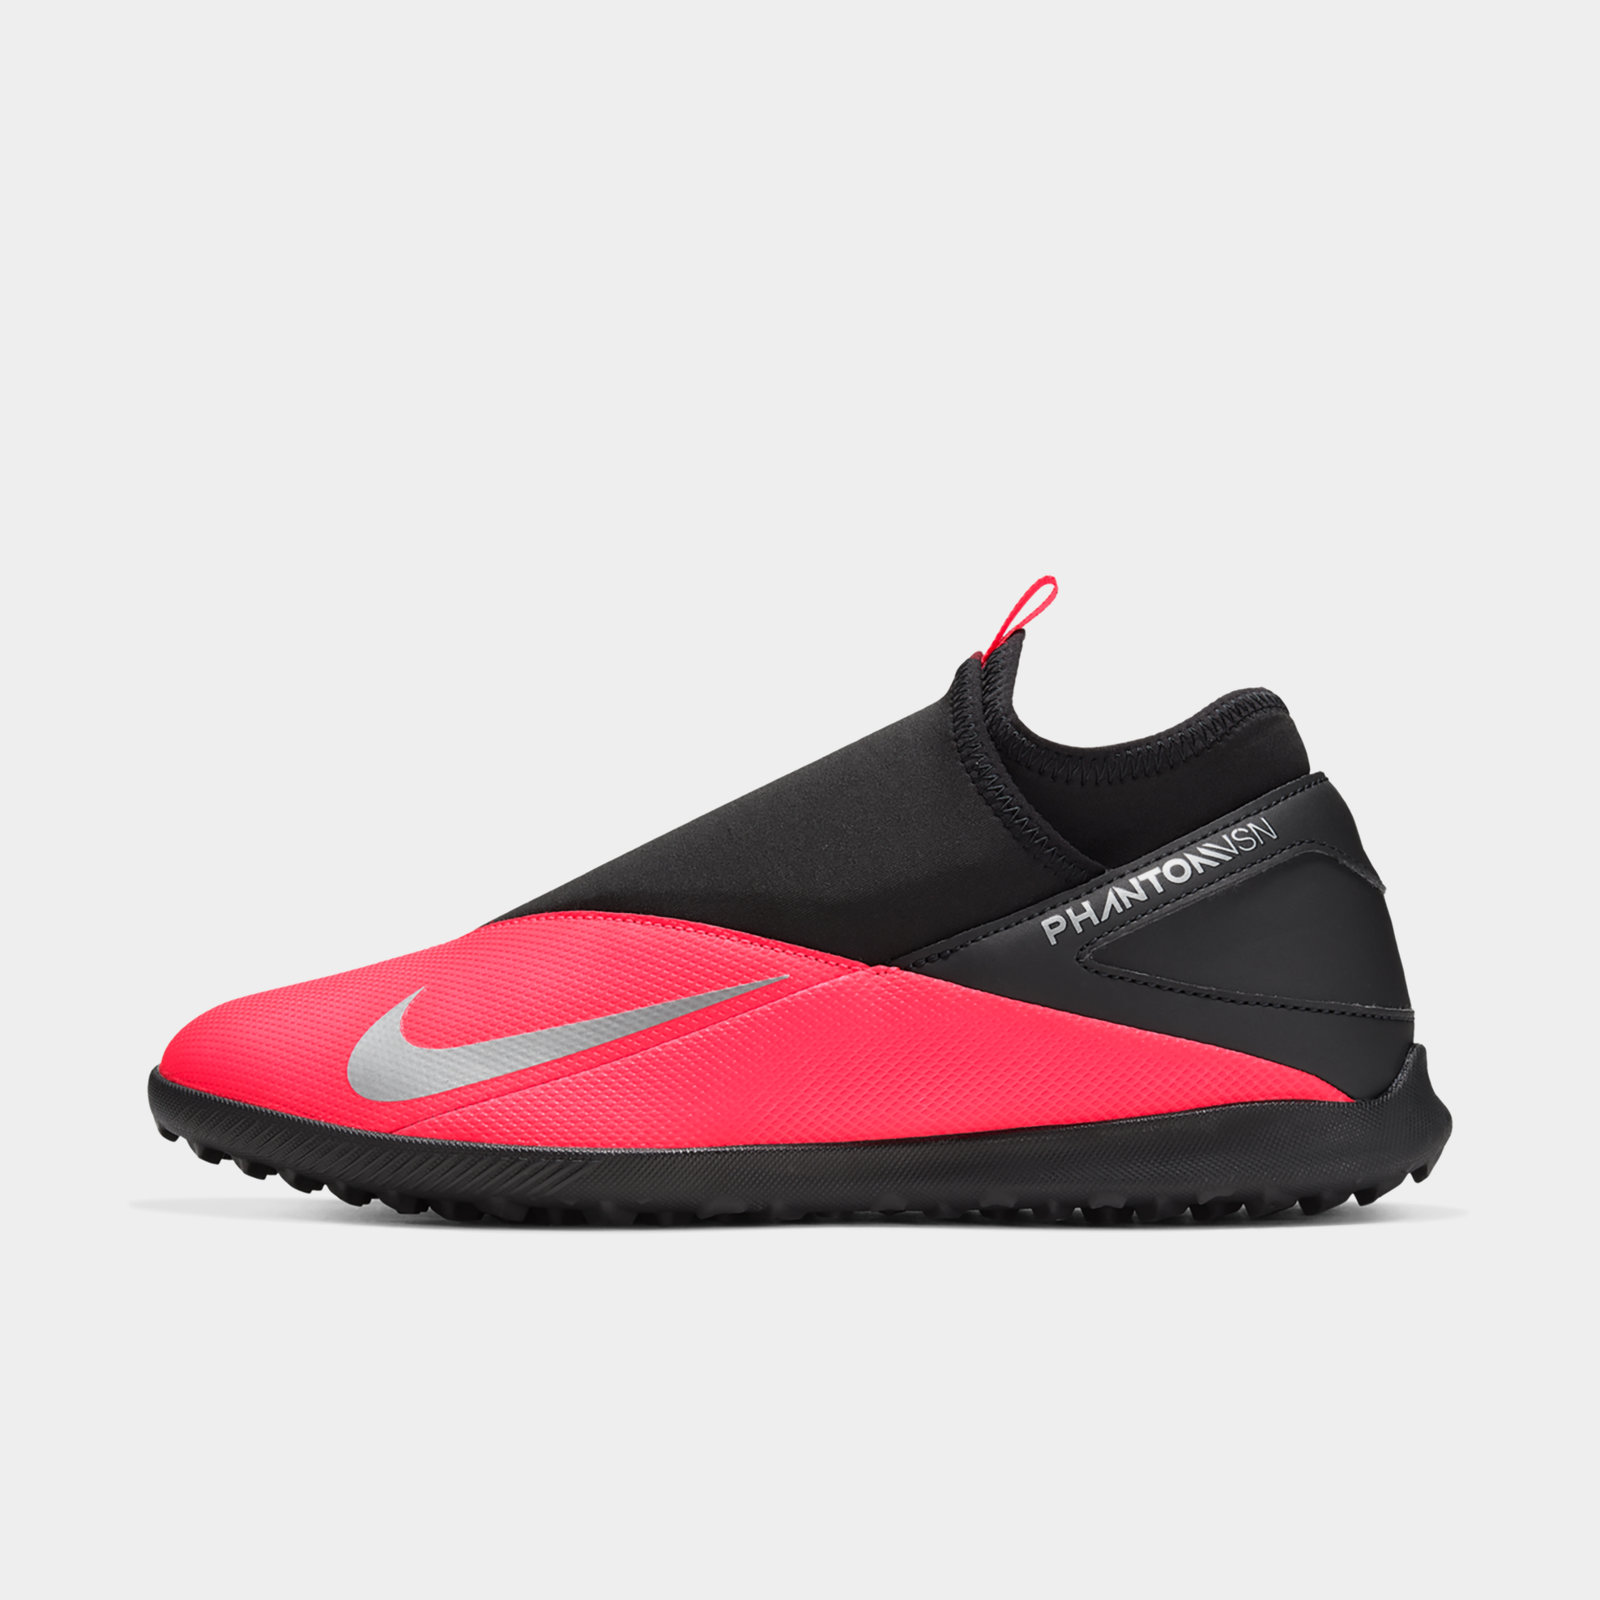 Phantom Vision Club DF Mens Astro Turf Trainers